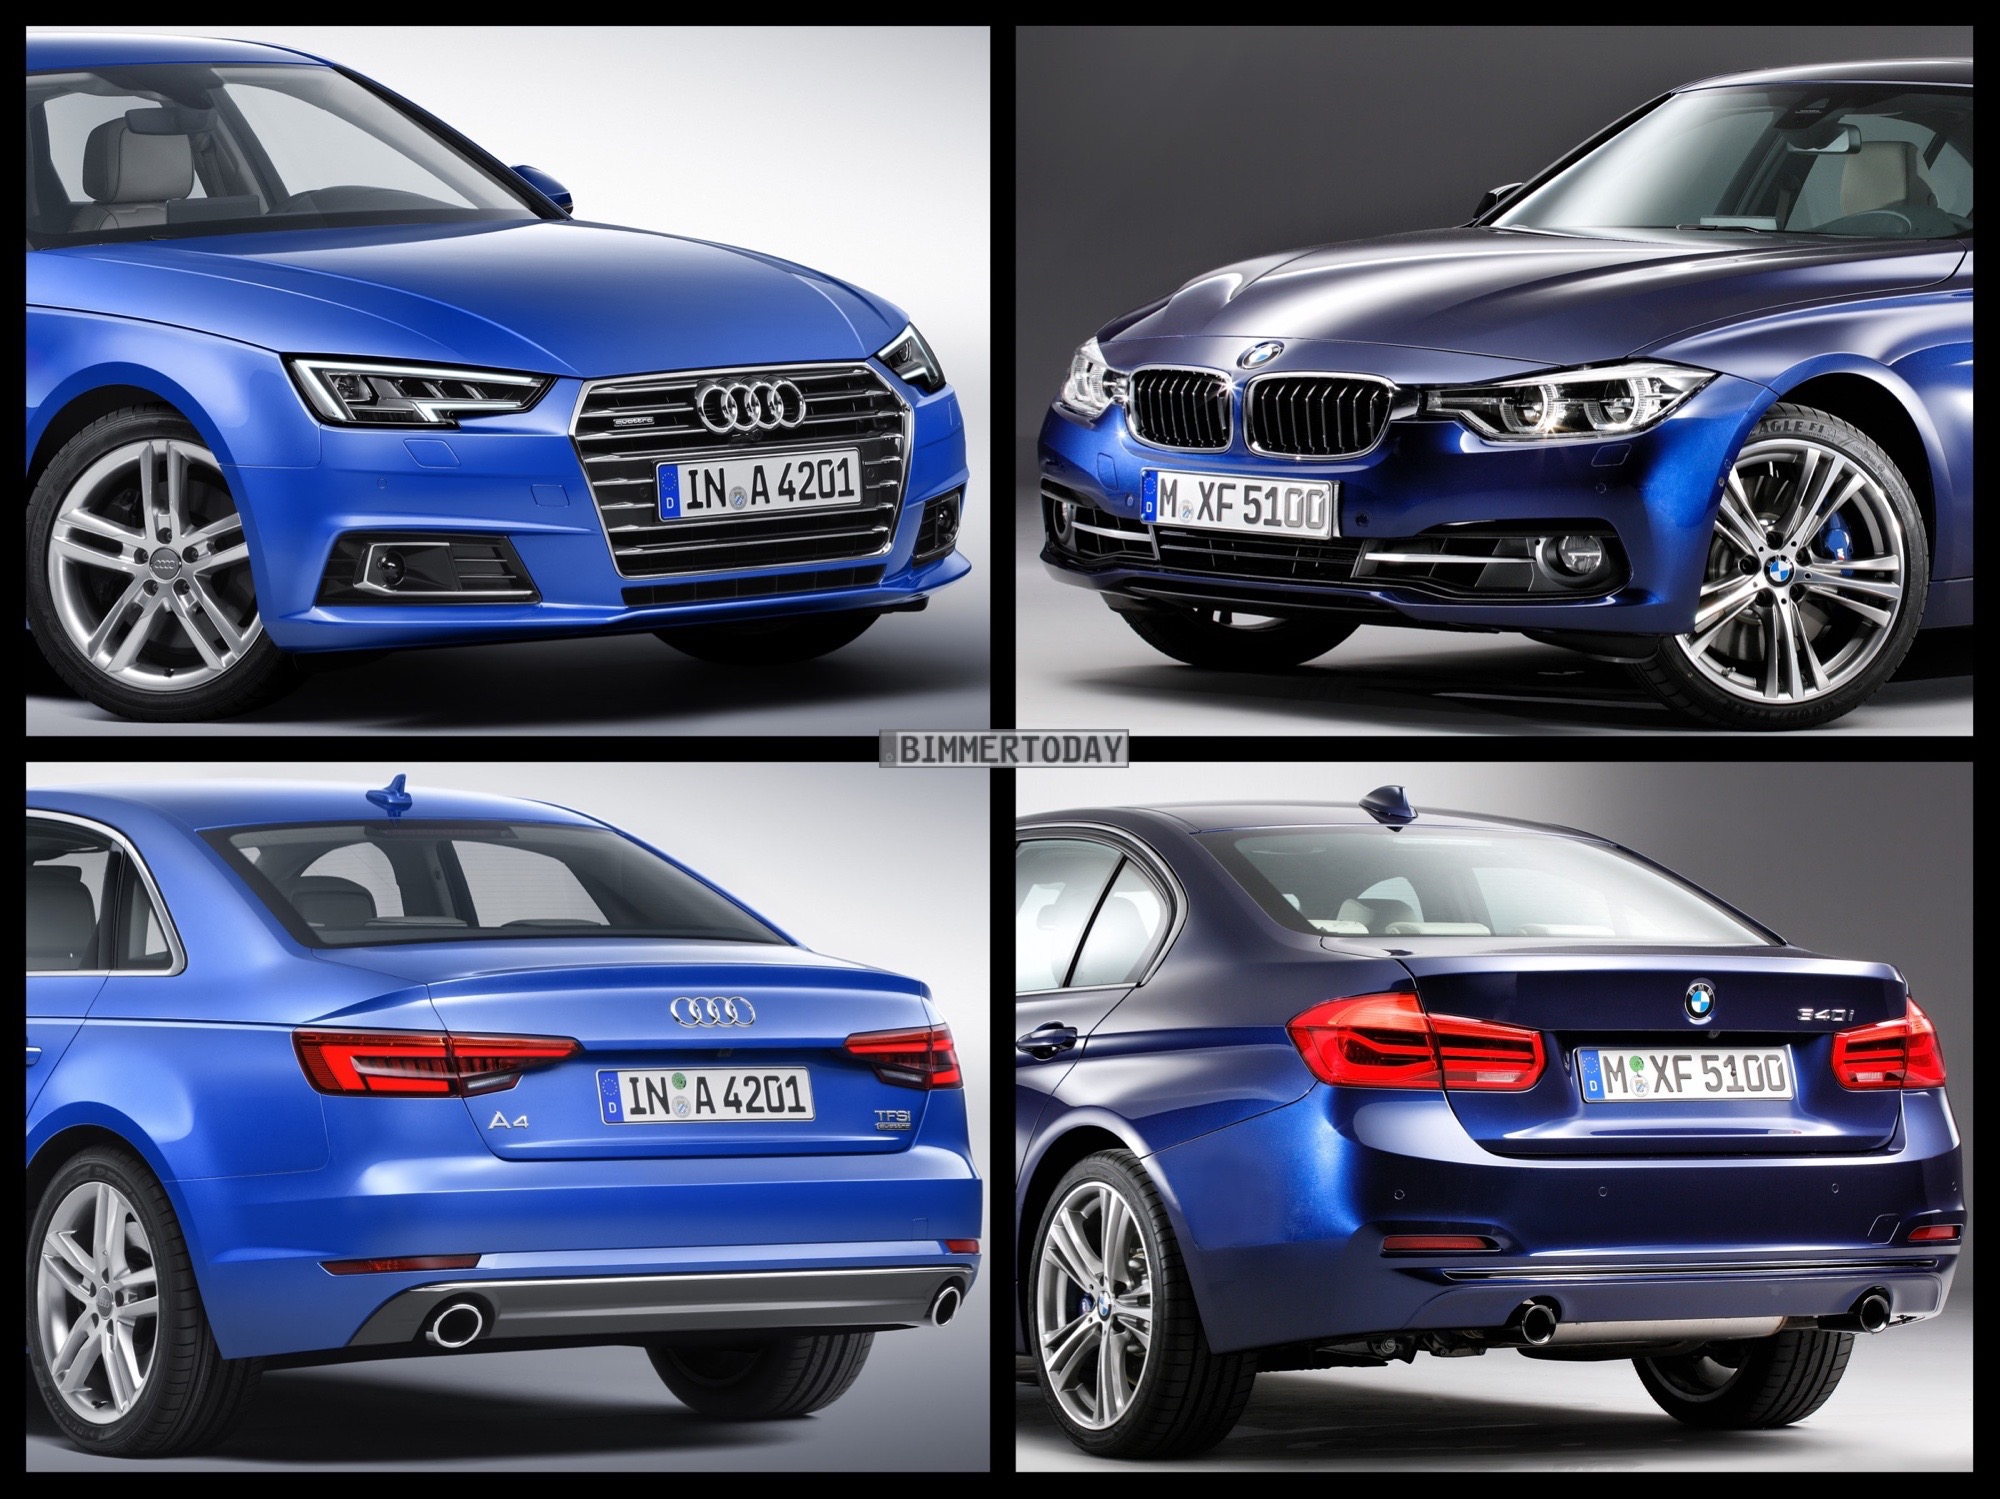 quattro audi specs intl manual price international premium prices